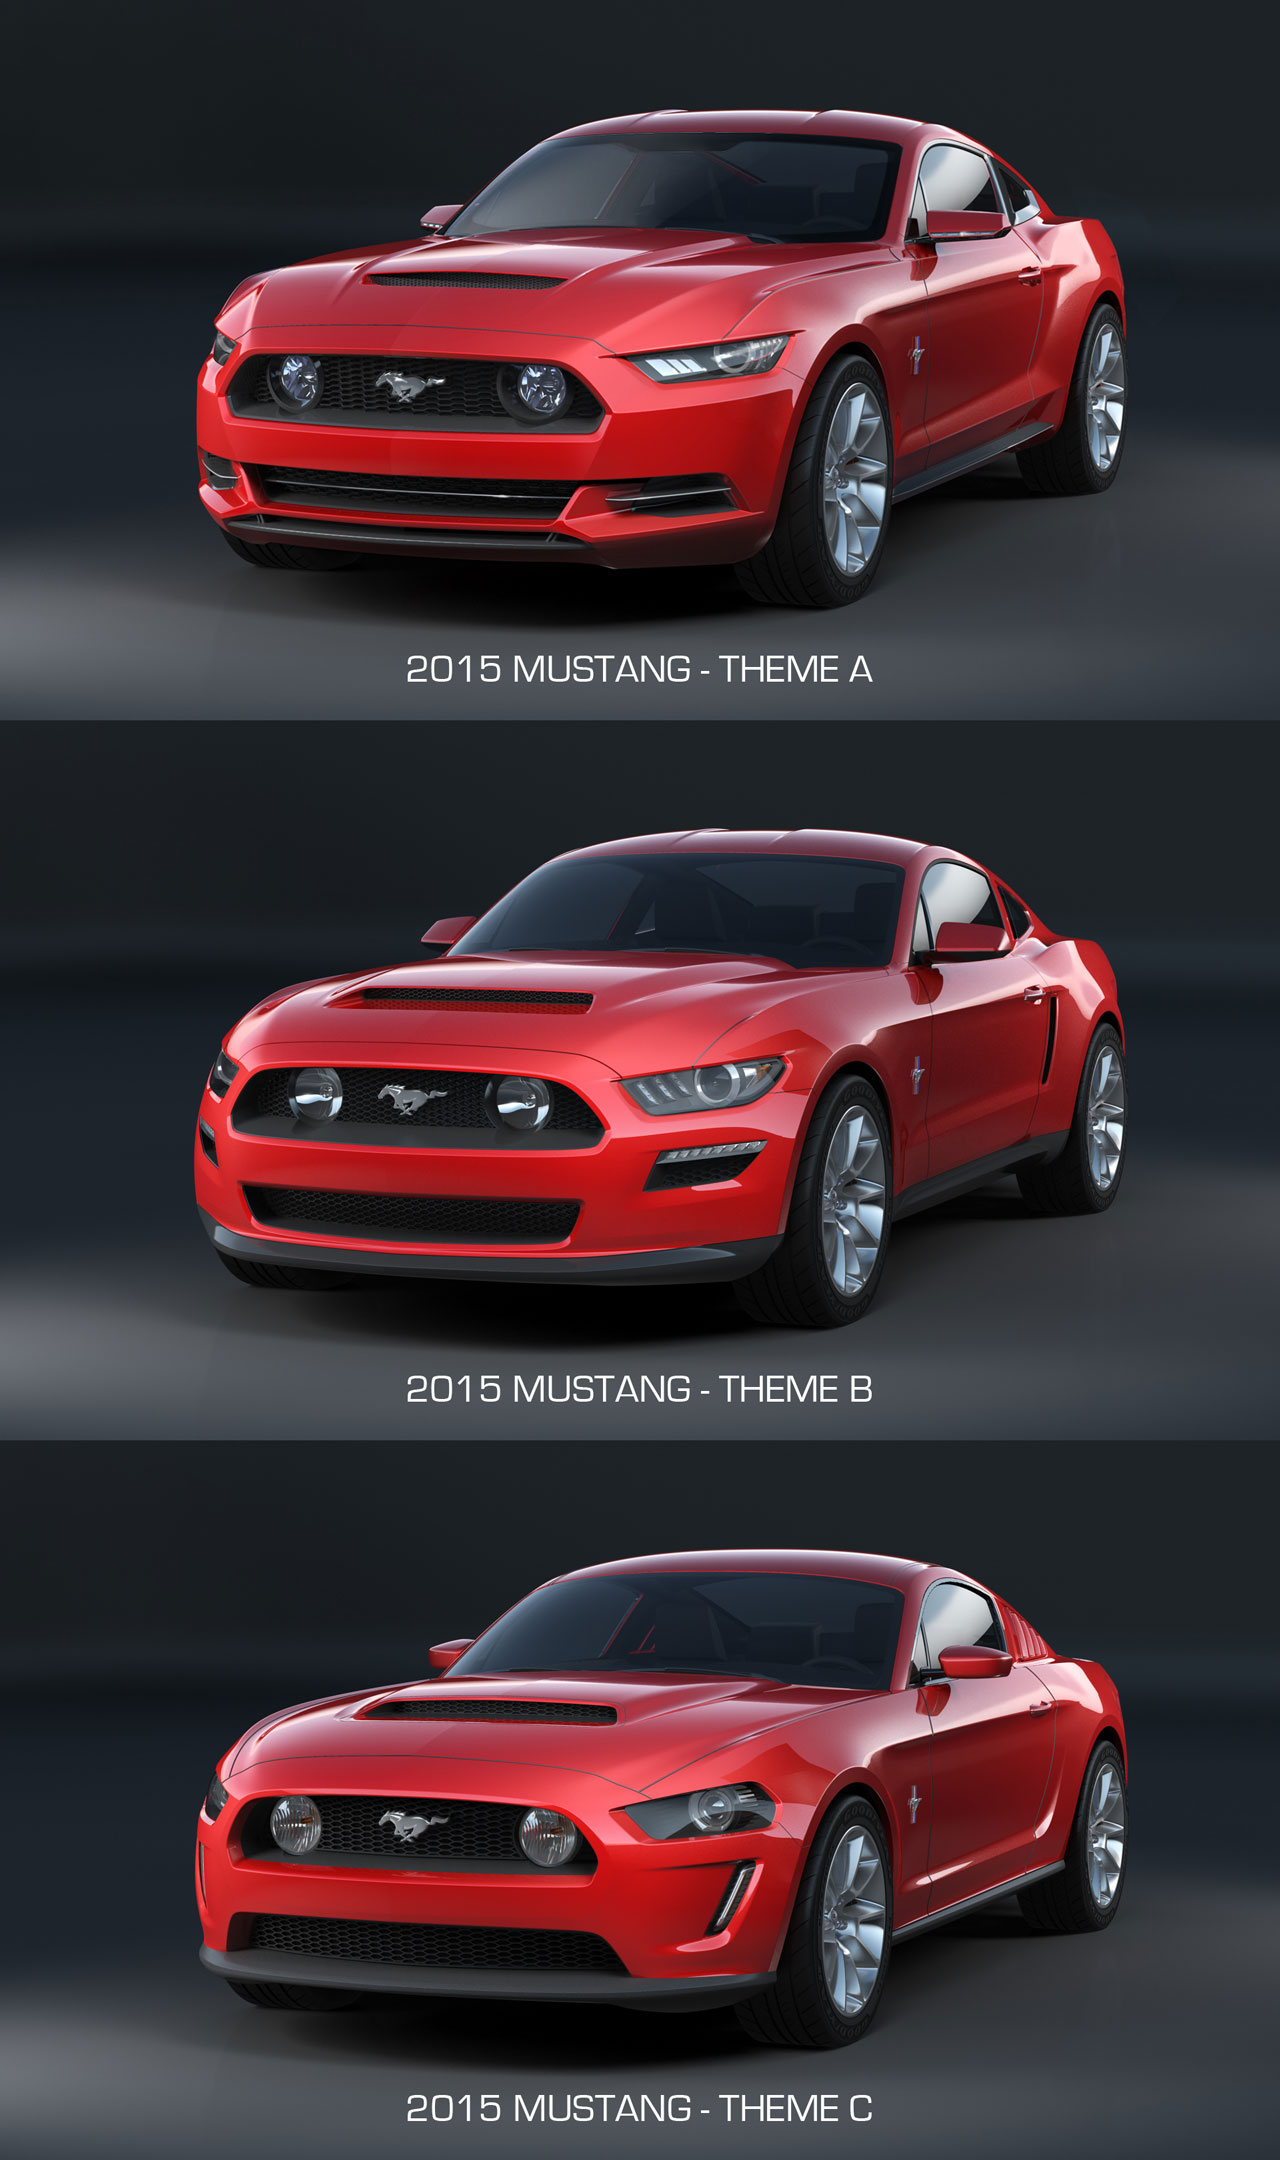 2015 ford mustang design theme comparison front end